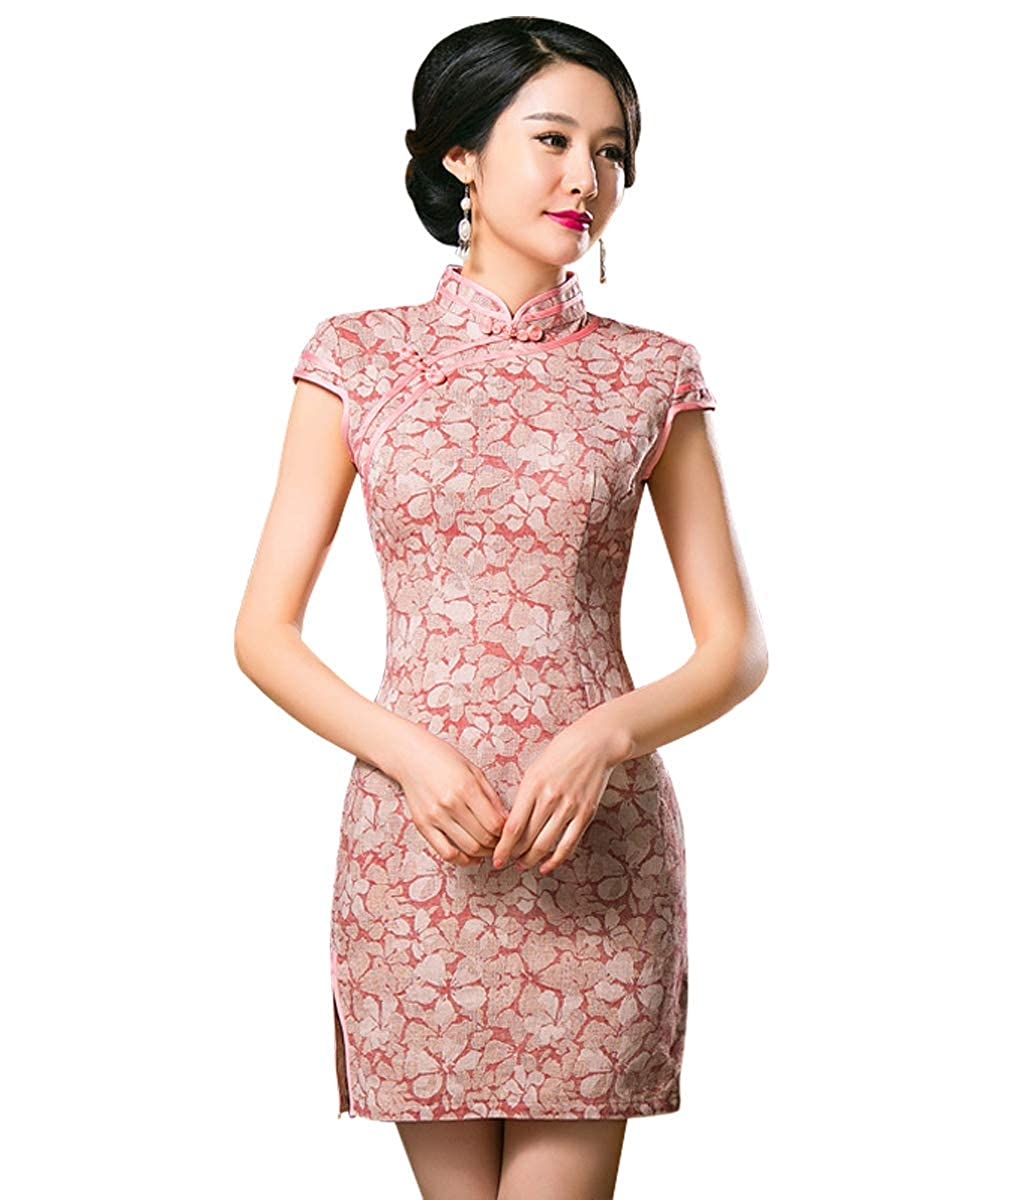 Wincolor Women's Vintage Chinese Traditional Cheongsam Short Sleeve Floral Qipao Dress